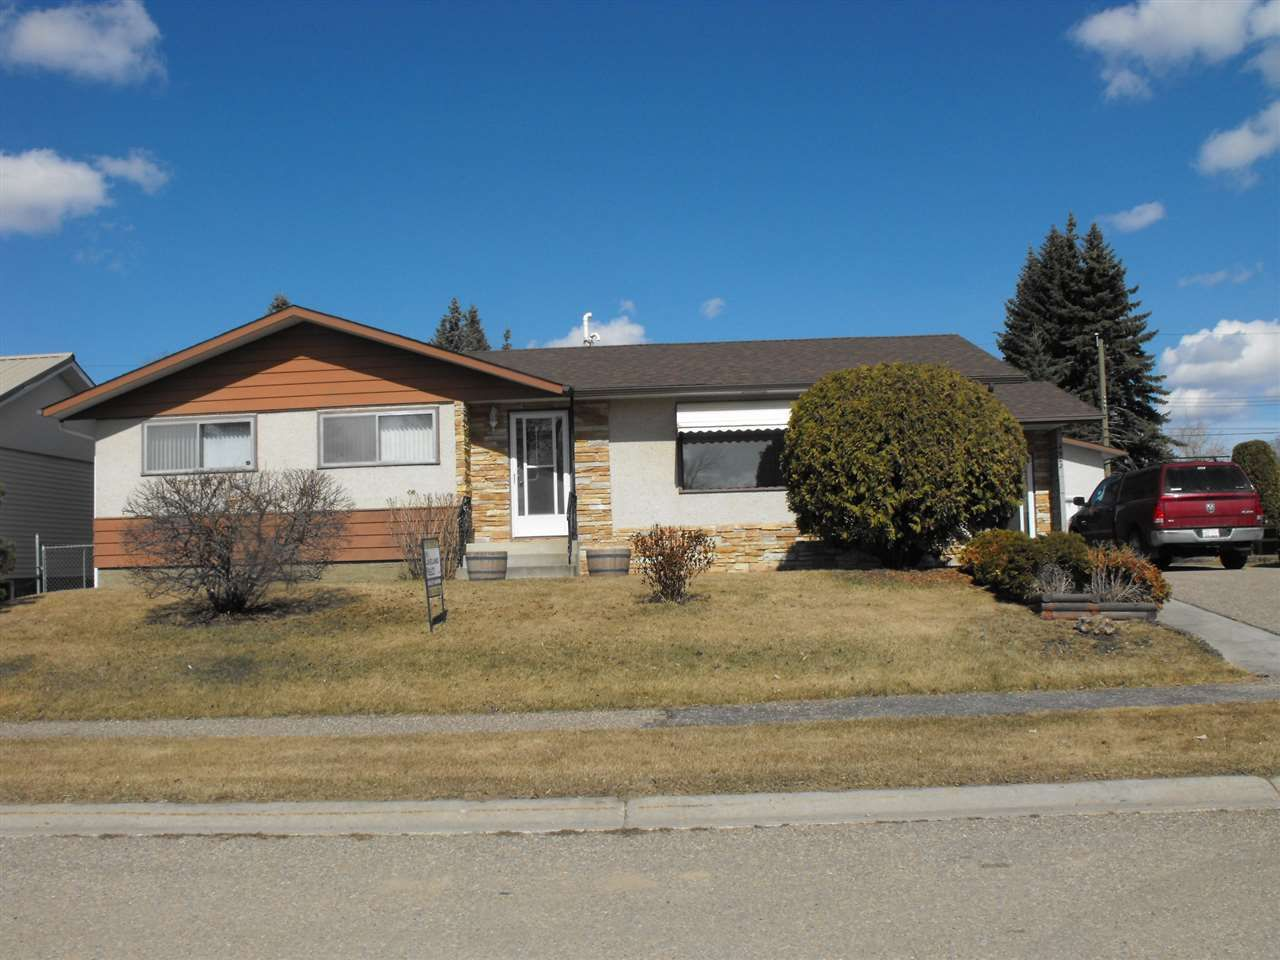 Main Photo: 4902 53 Avenue: Elk Point House for sale : MLS®# E4233623